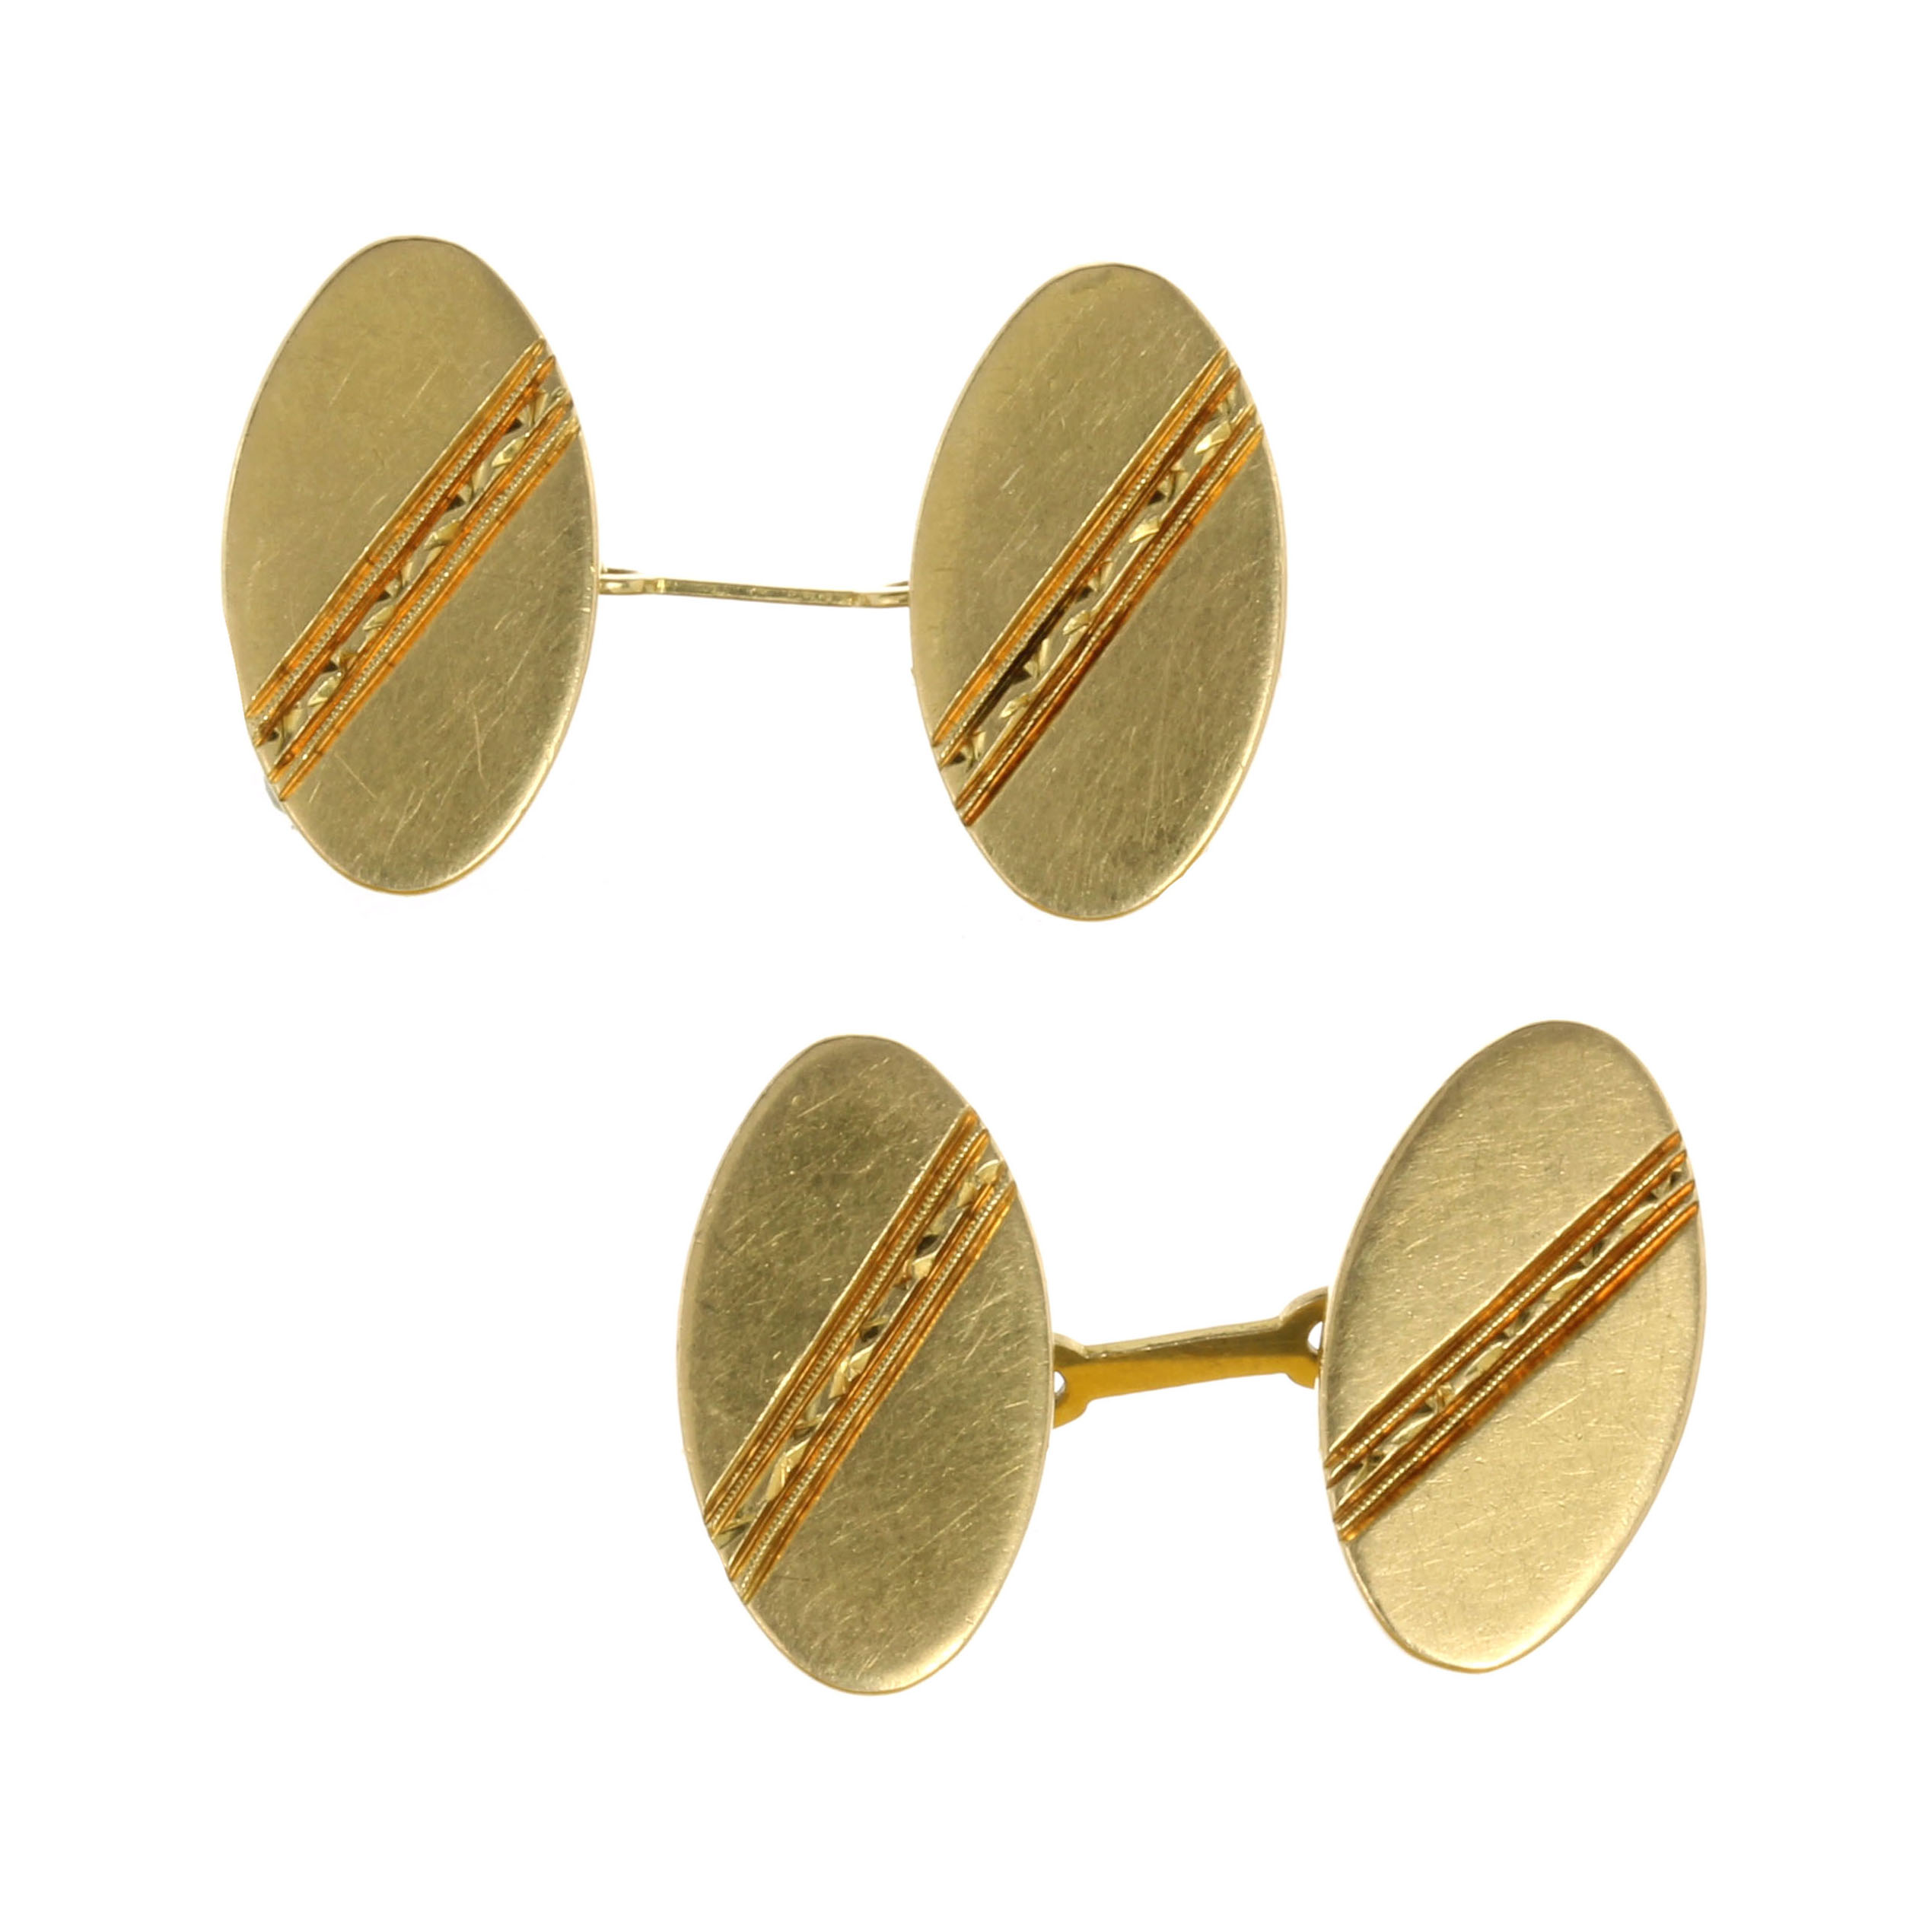 Los 42 - A PAIR OF VINTAGE CUFFLINKS POSSIBLY BY ROLEX in 18ct yellow gold each with two, connected oval